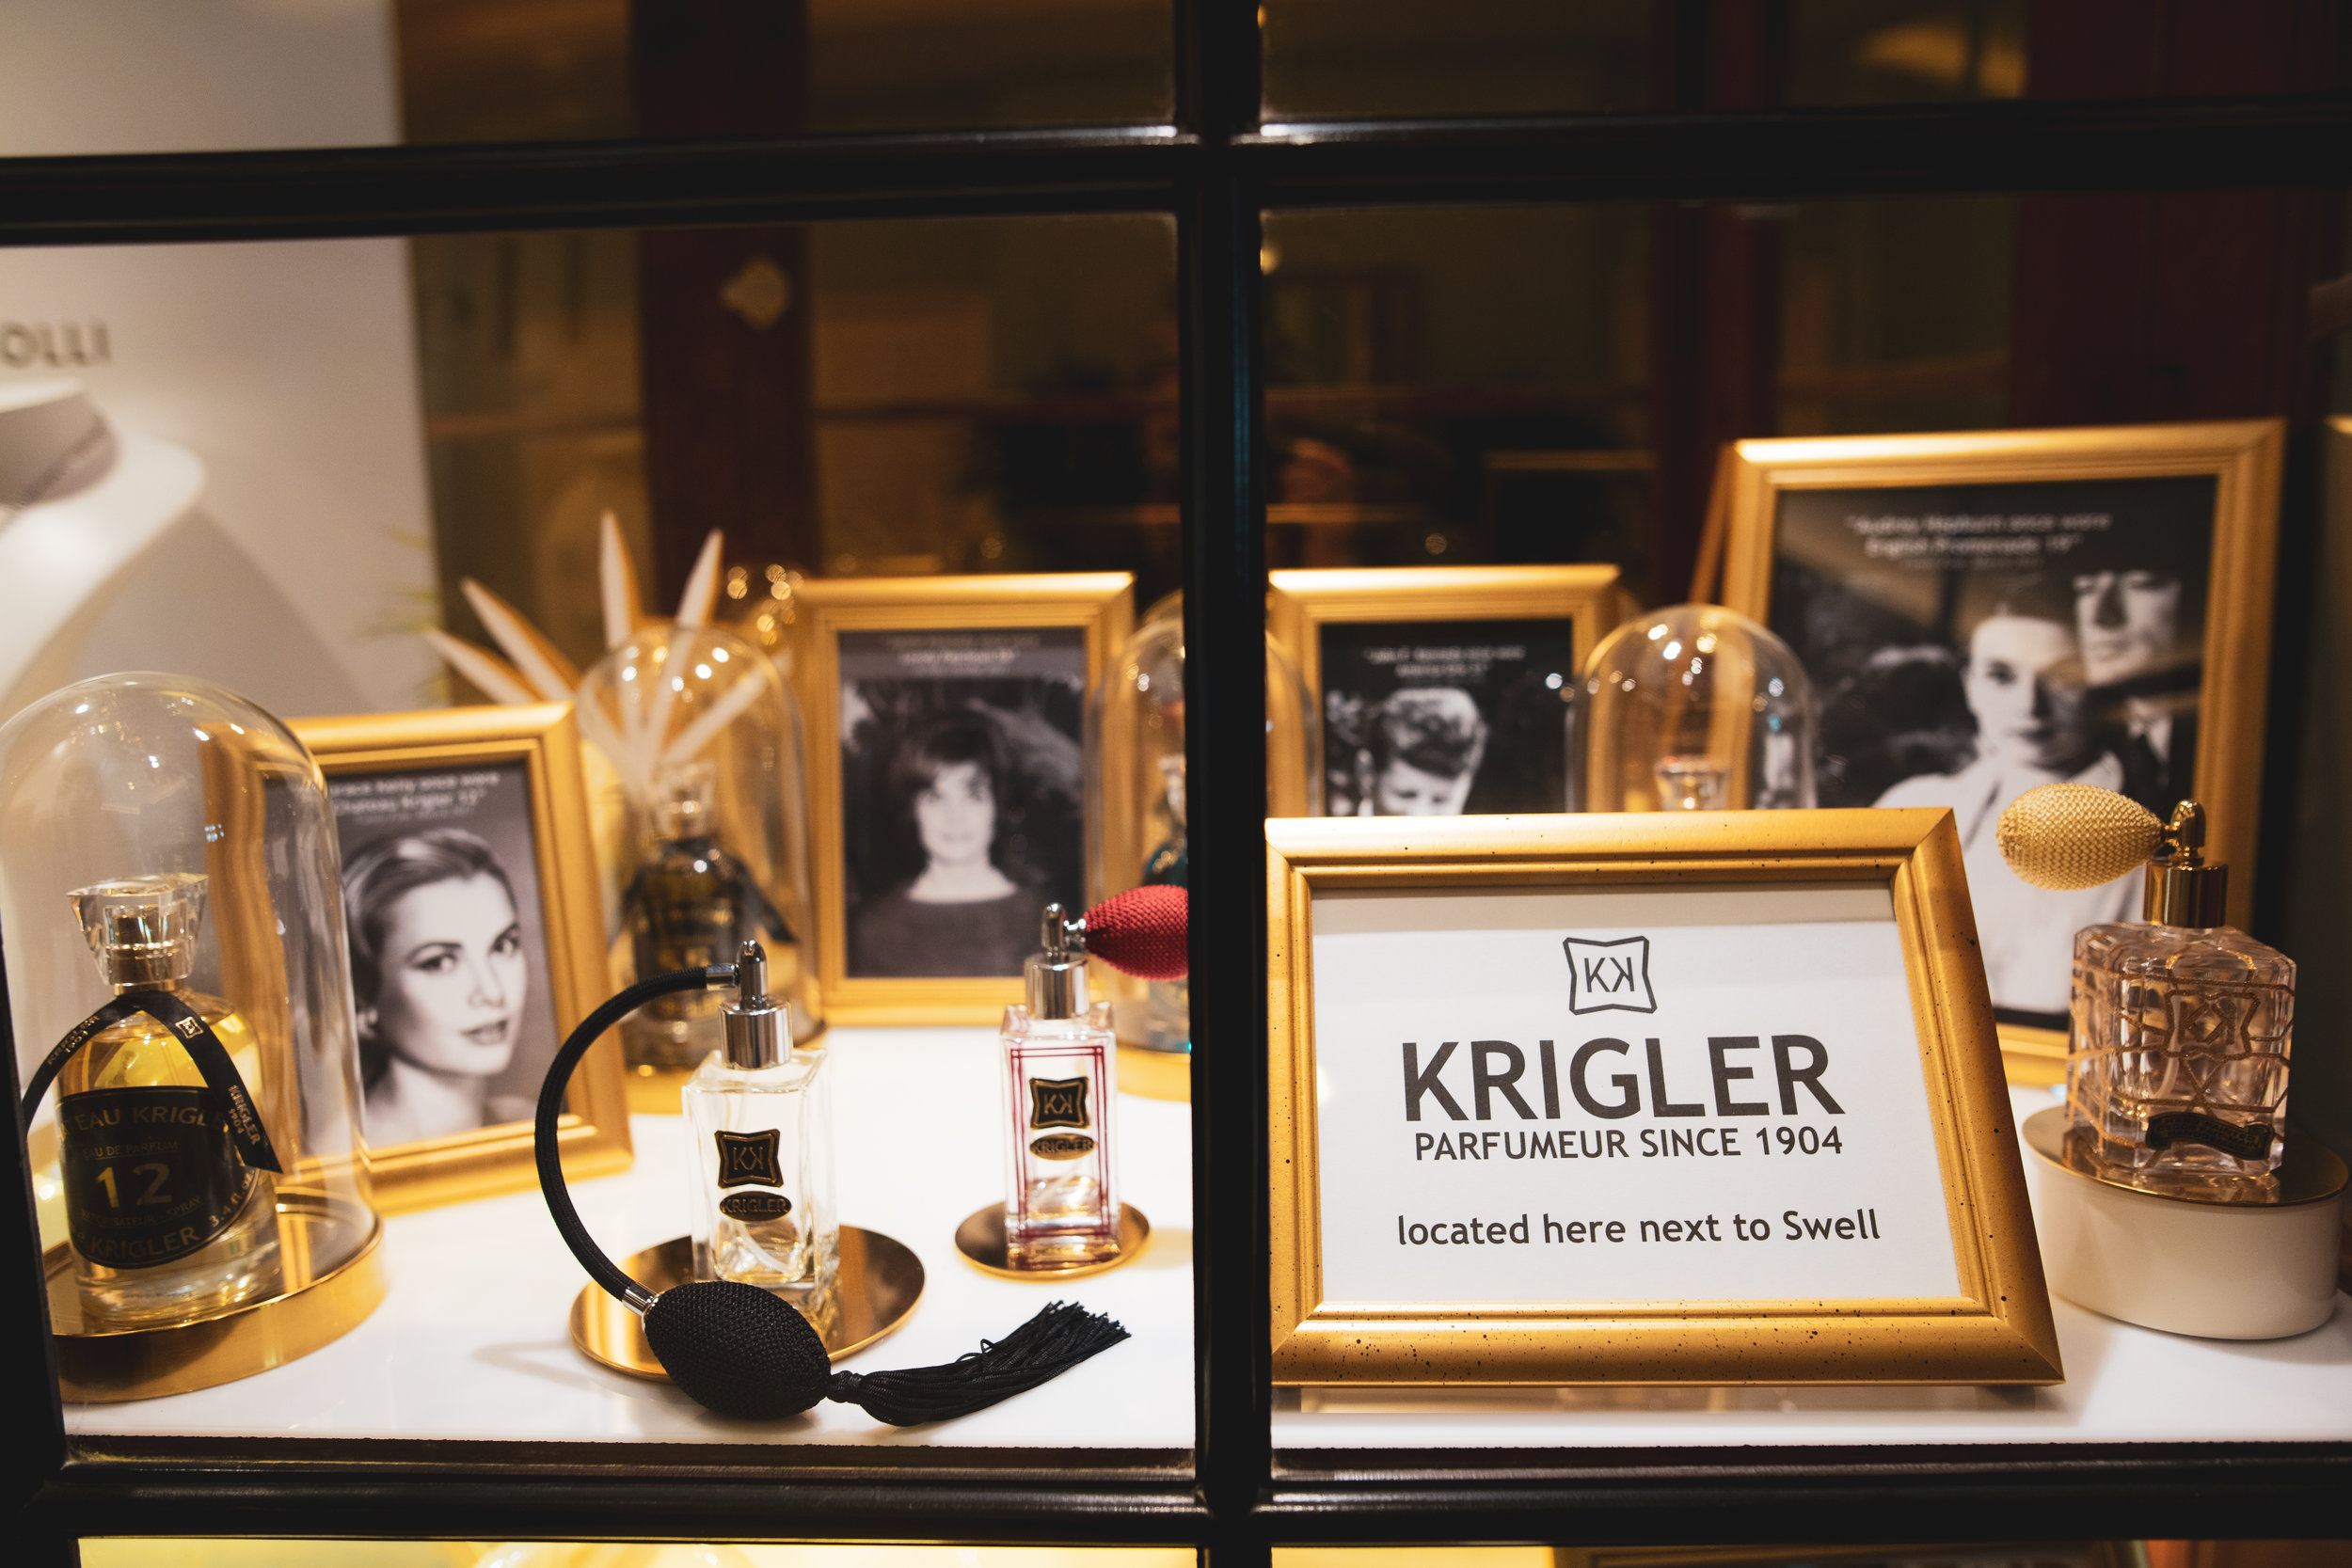 krigler parfumeur four seasons palm beach © kelilina photography 2019 20190409153703-1.jpg